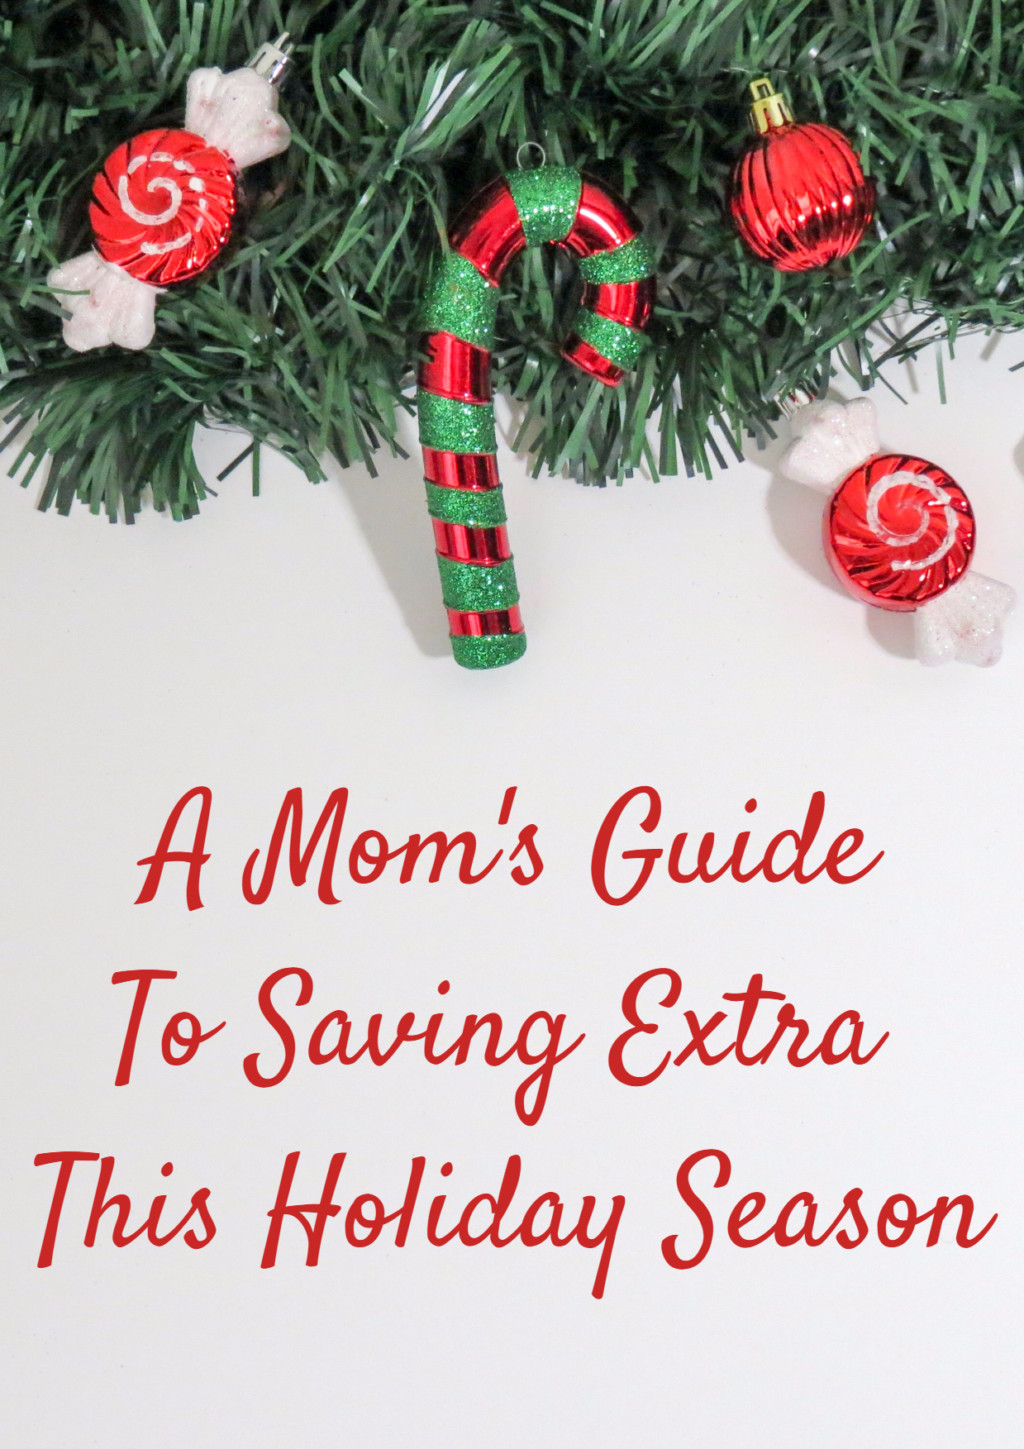 A Mom's Guide To Saving Extra This Holiday Season